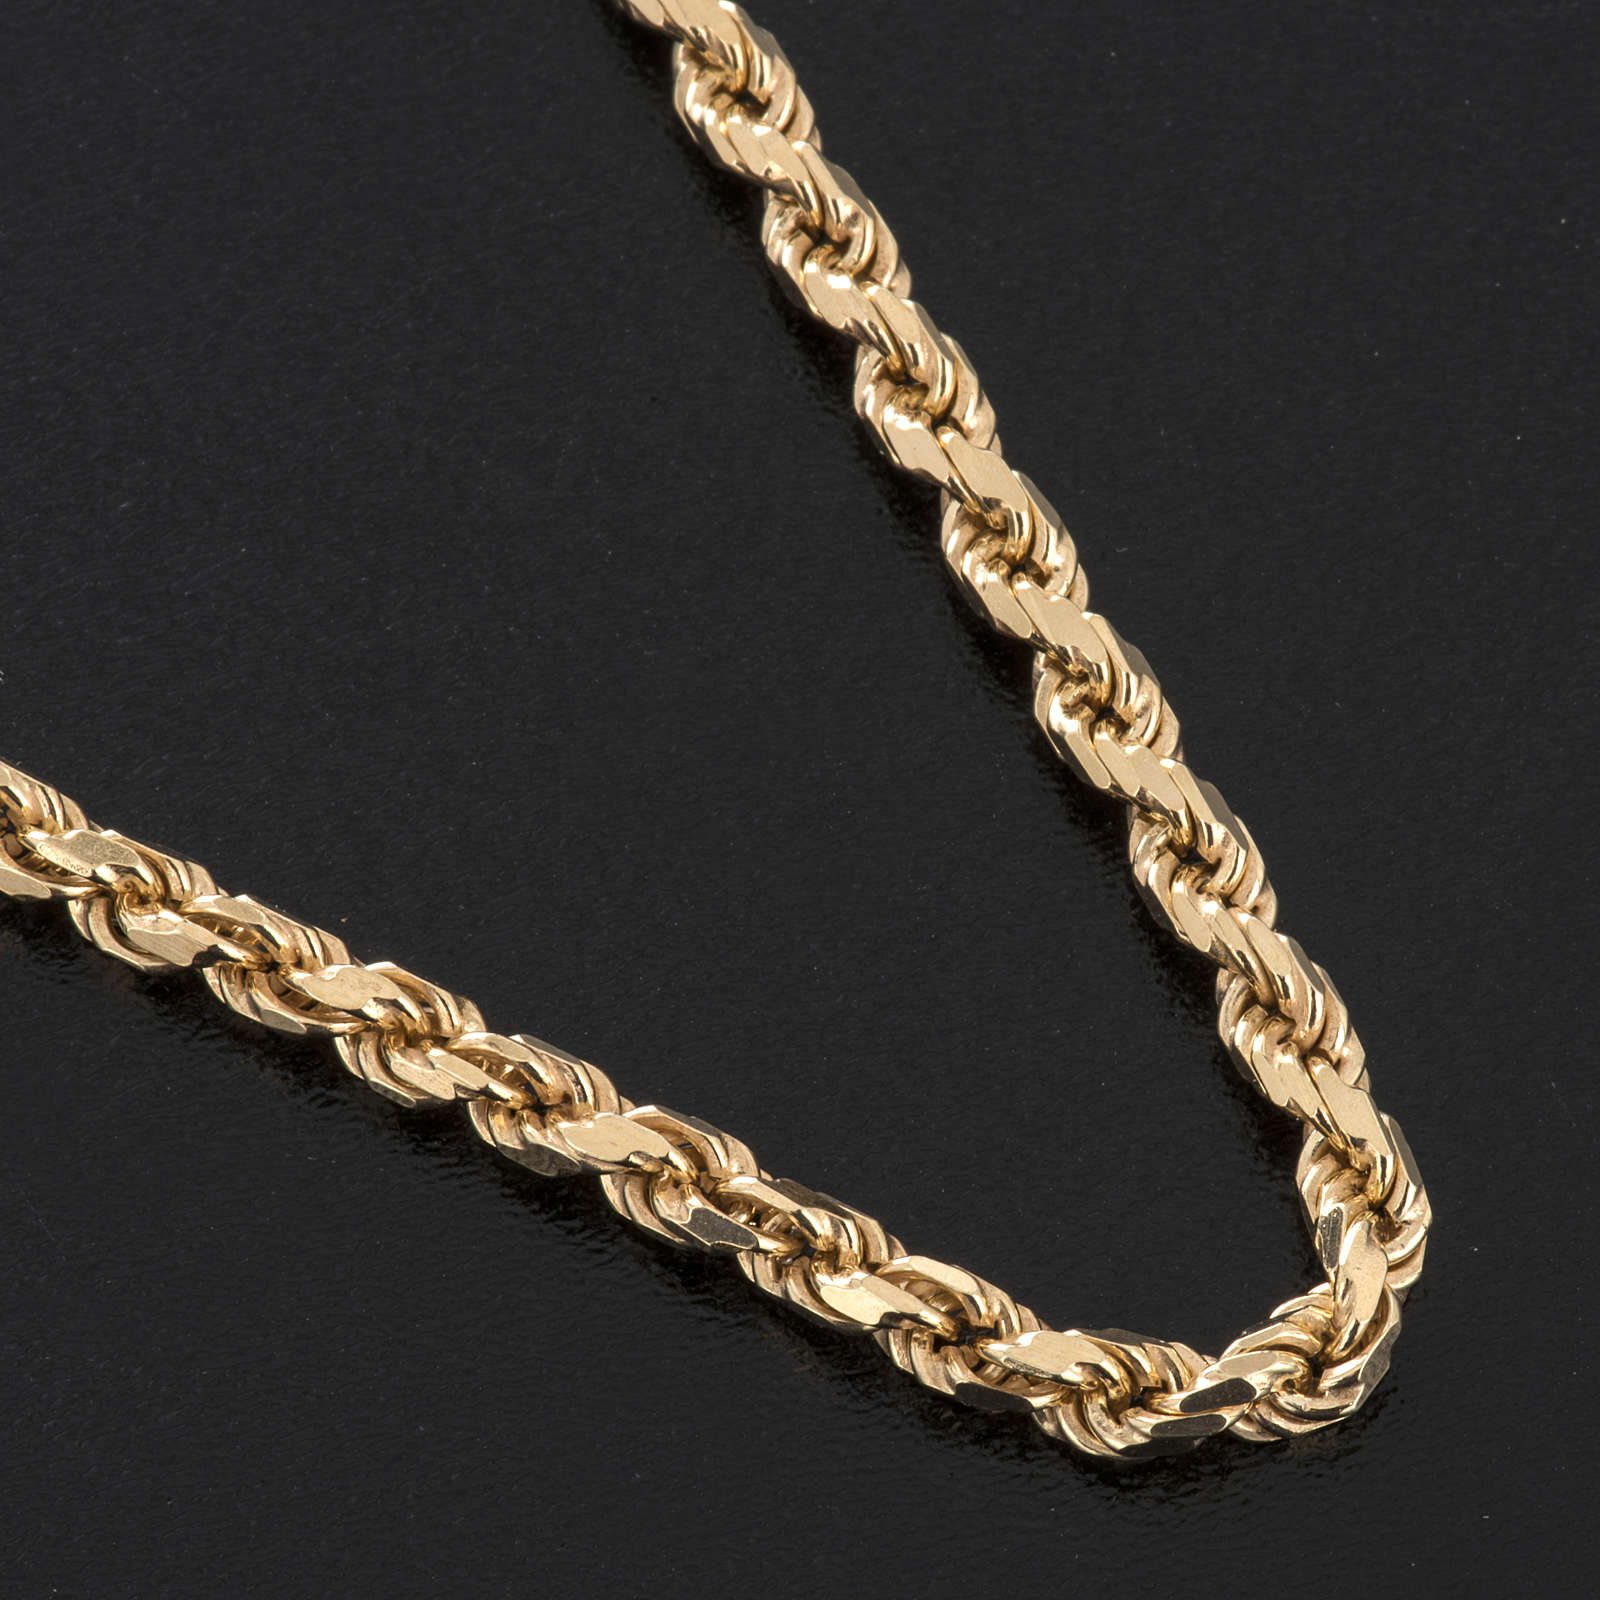 Chain for bishop's cross in gold-plated sterling silver 3